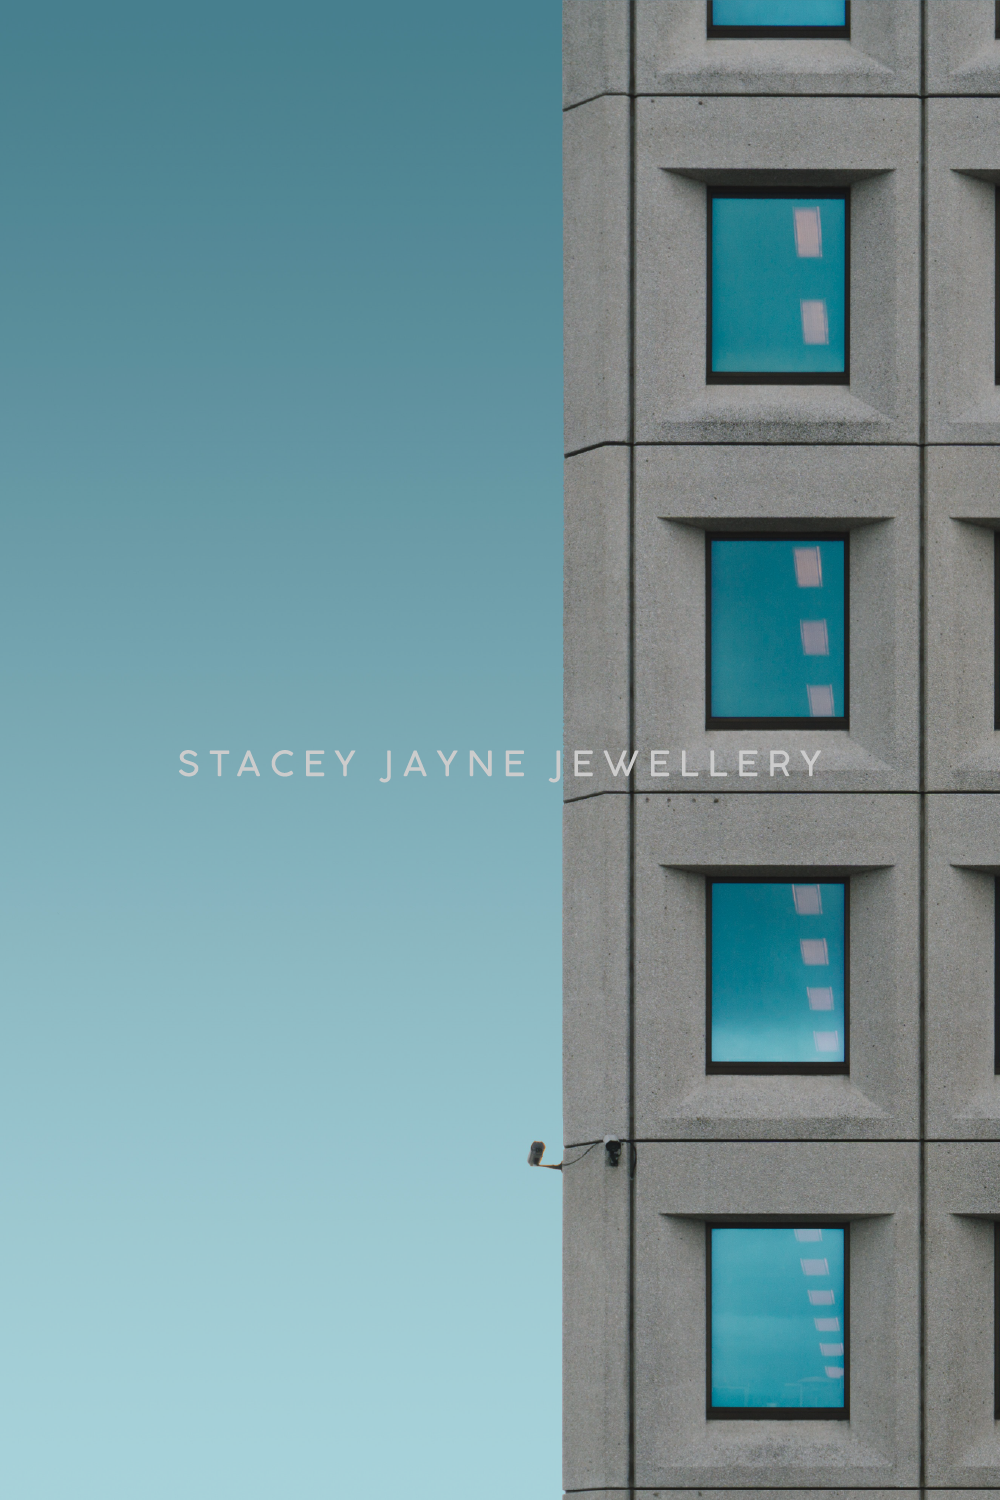 Stacey_Jayne_Jewellery_GraphicDesign_Somerset_London_WebDesign.png